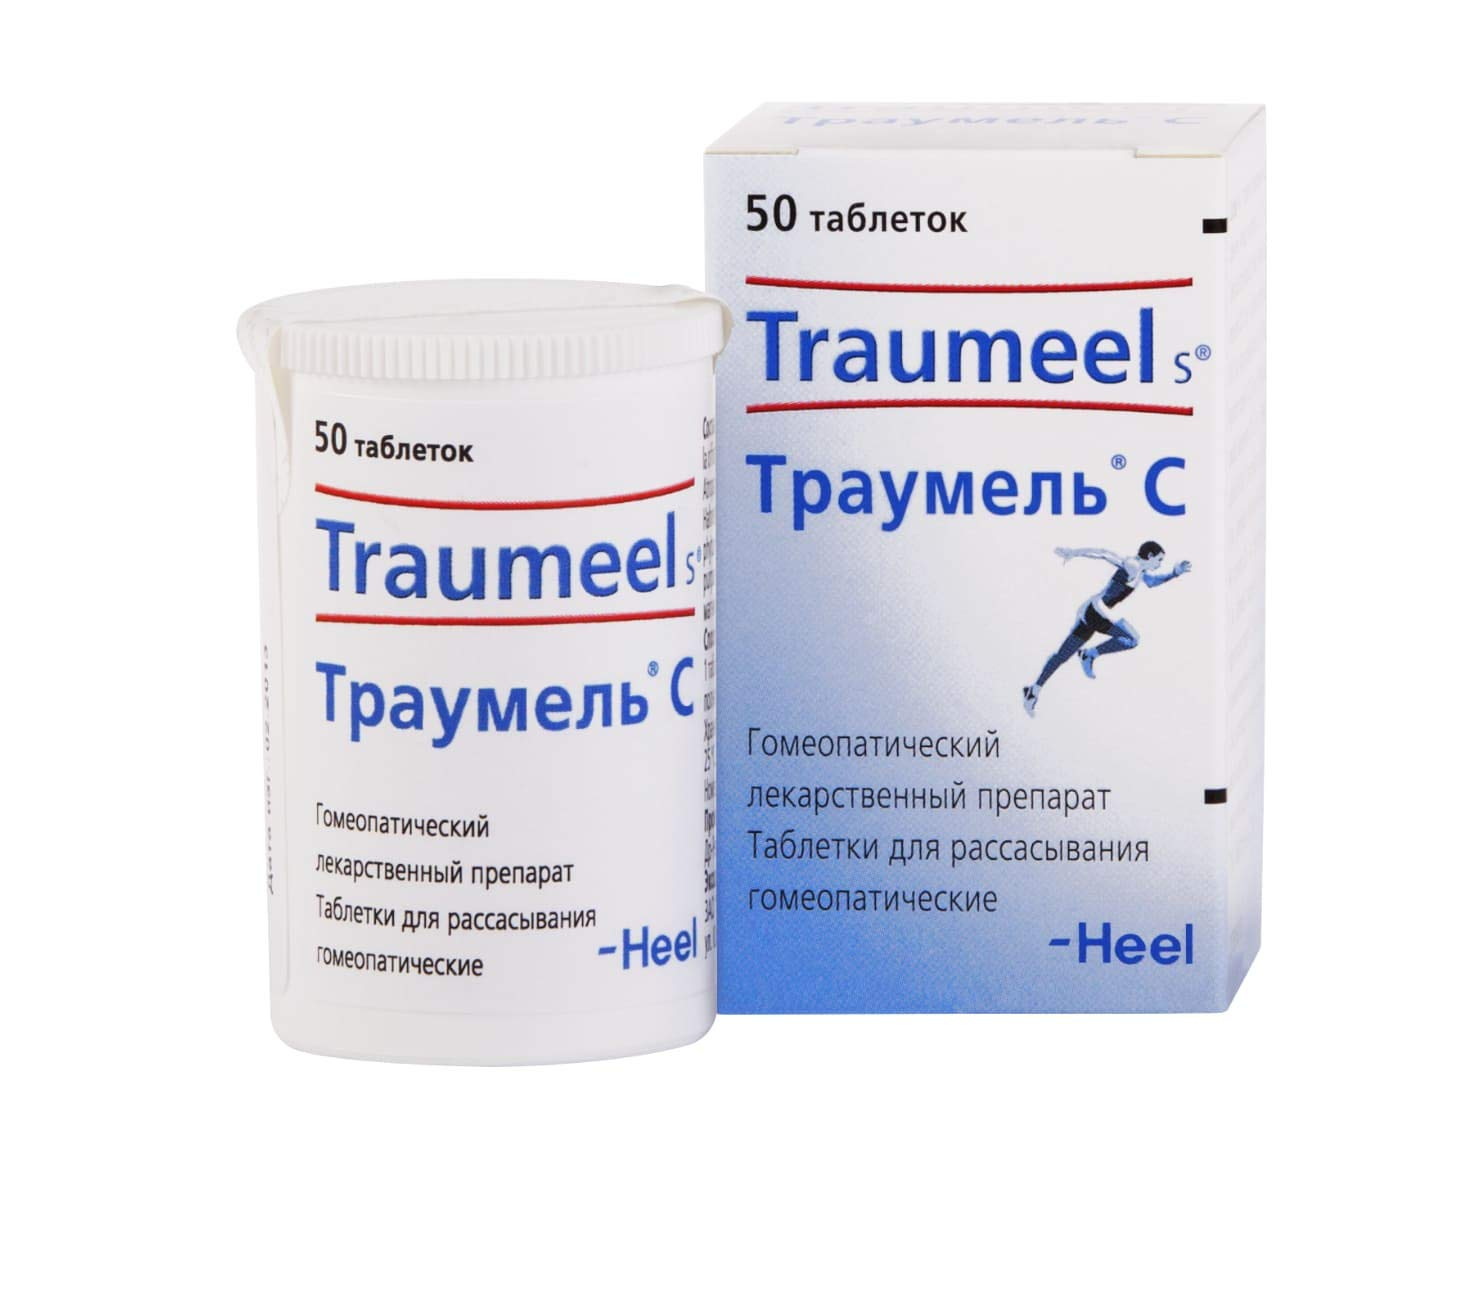 Traumeel S Homeopathic 50 Tablets (Pack of 3) by Heel Inc.